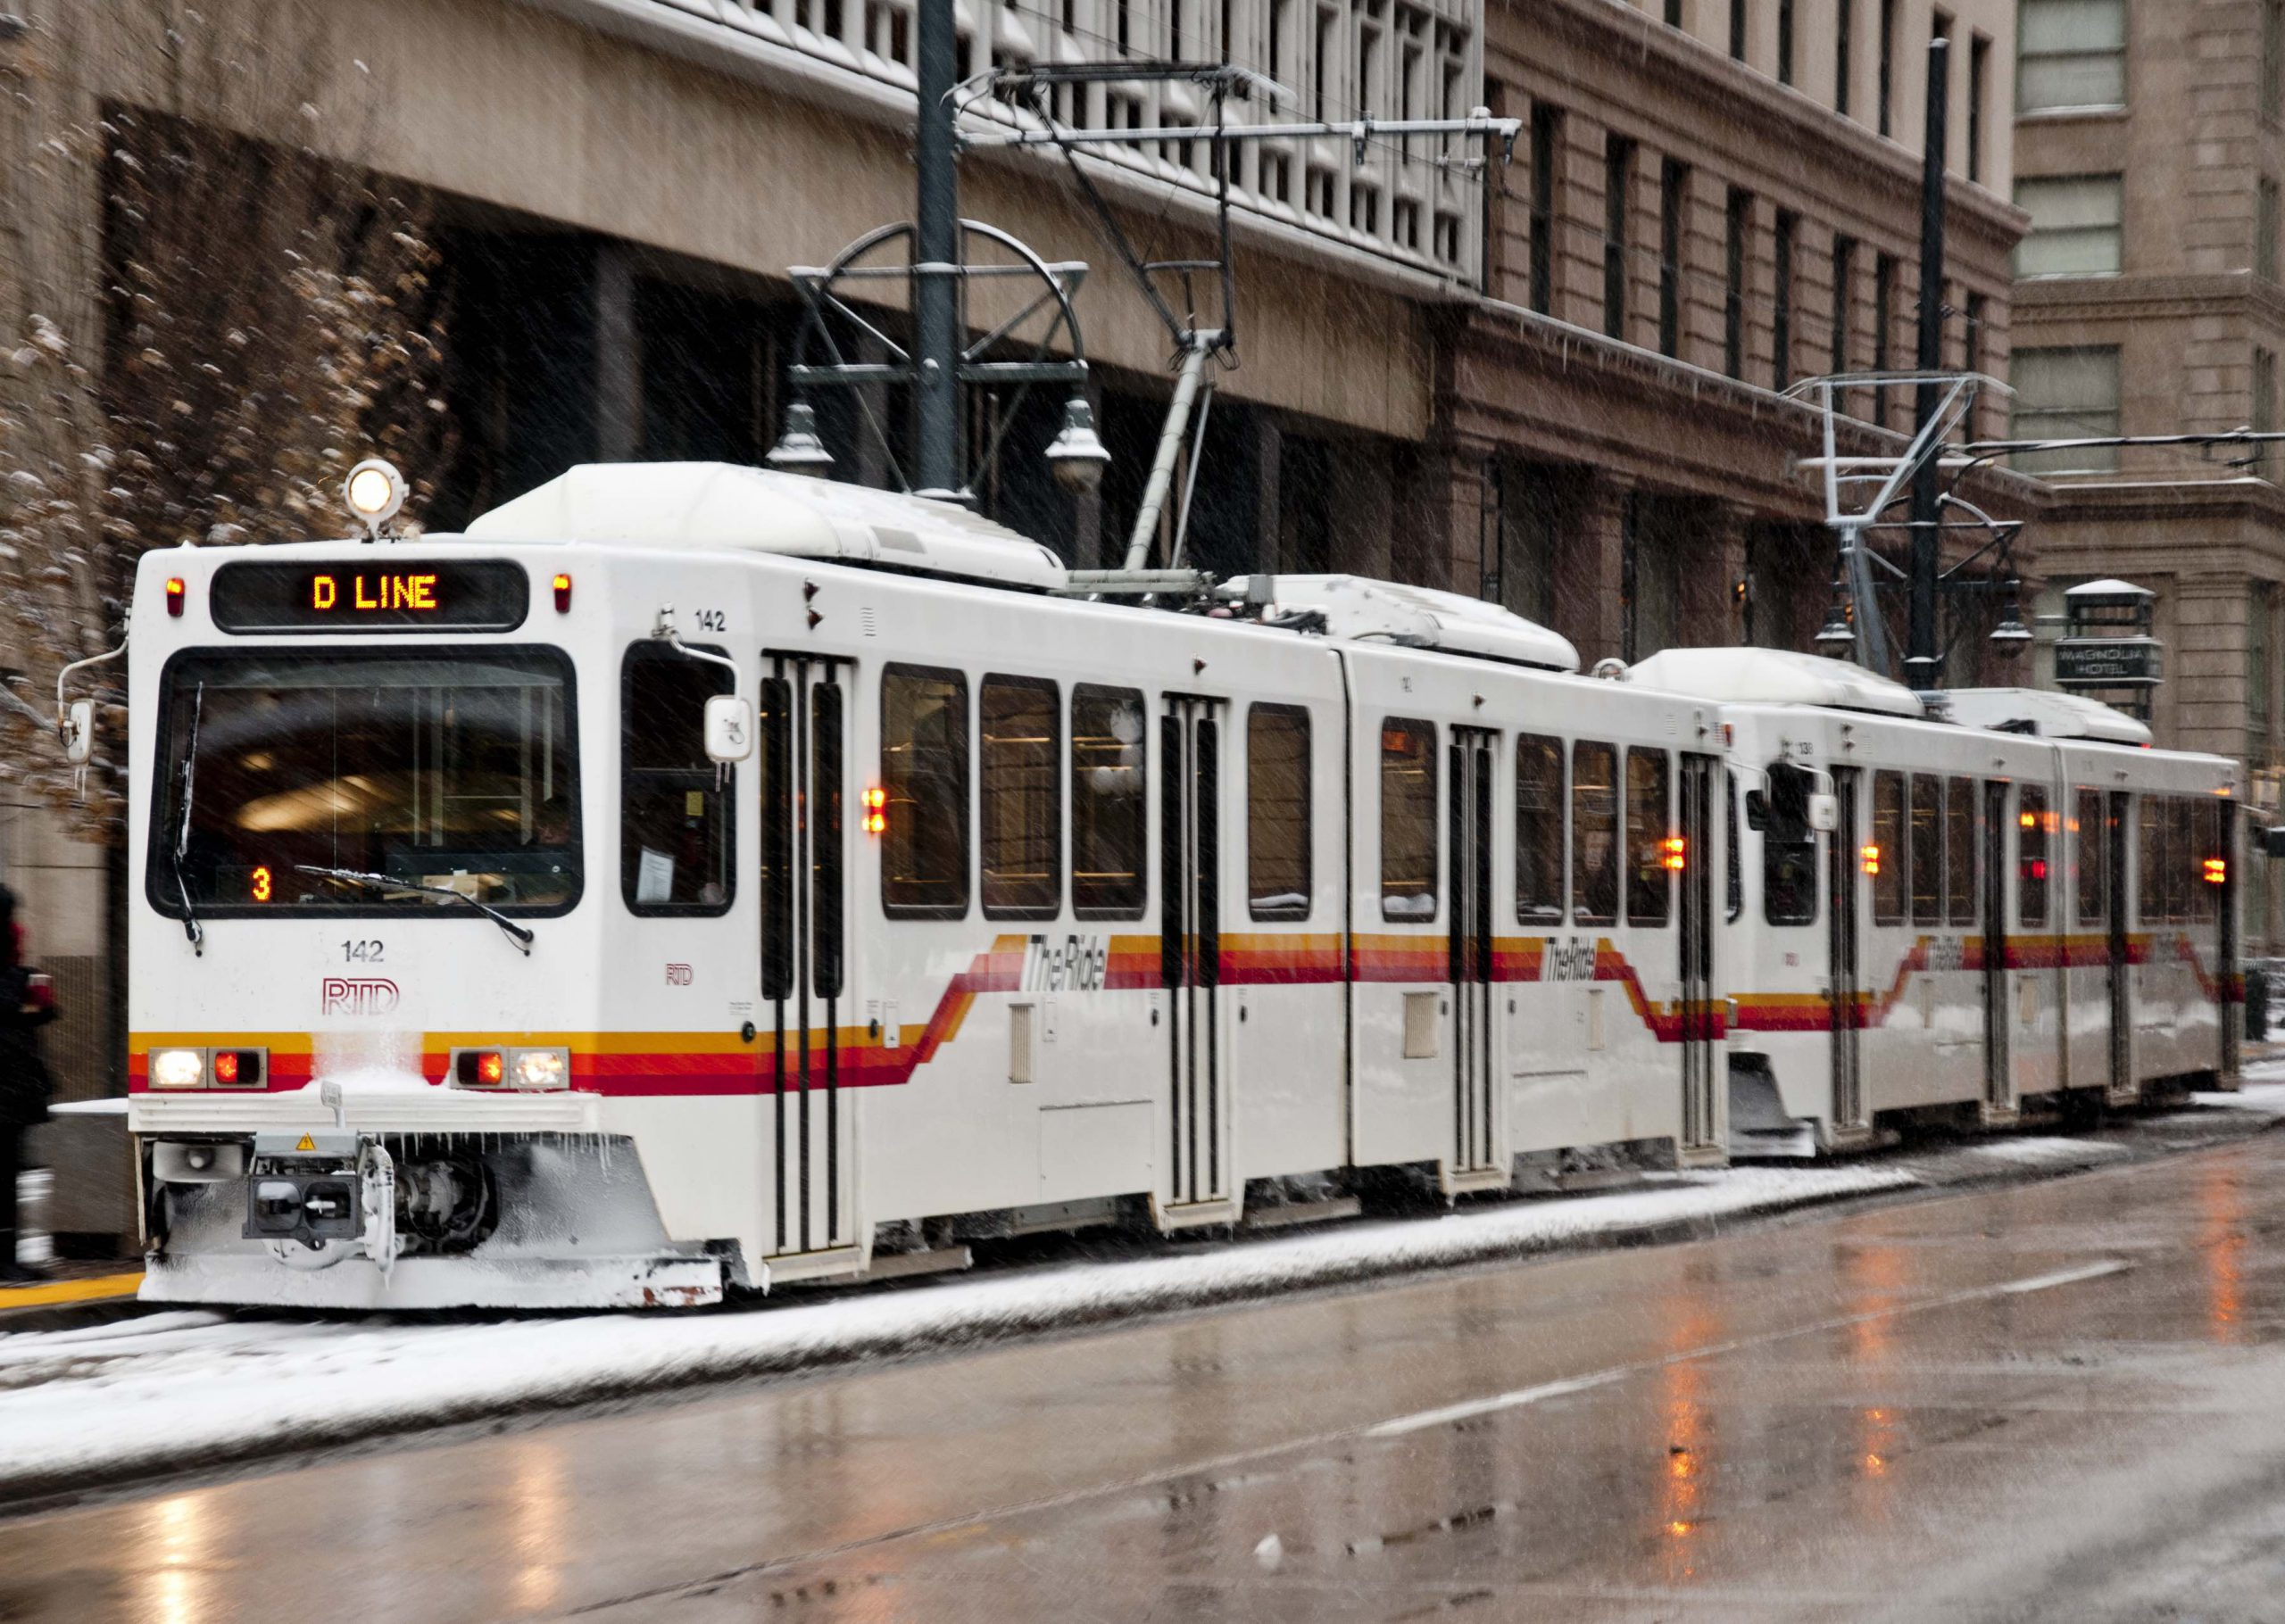 Exclusive: After 10 Months, Sales of Public Transit Tickets in Uber App Still Make Up Small Share of Mobile Ticketing in Denver